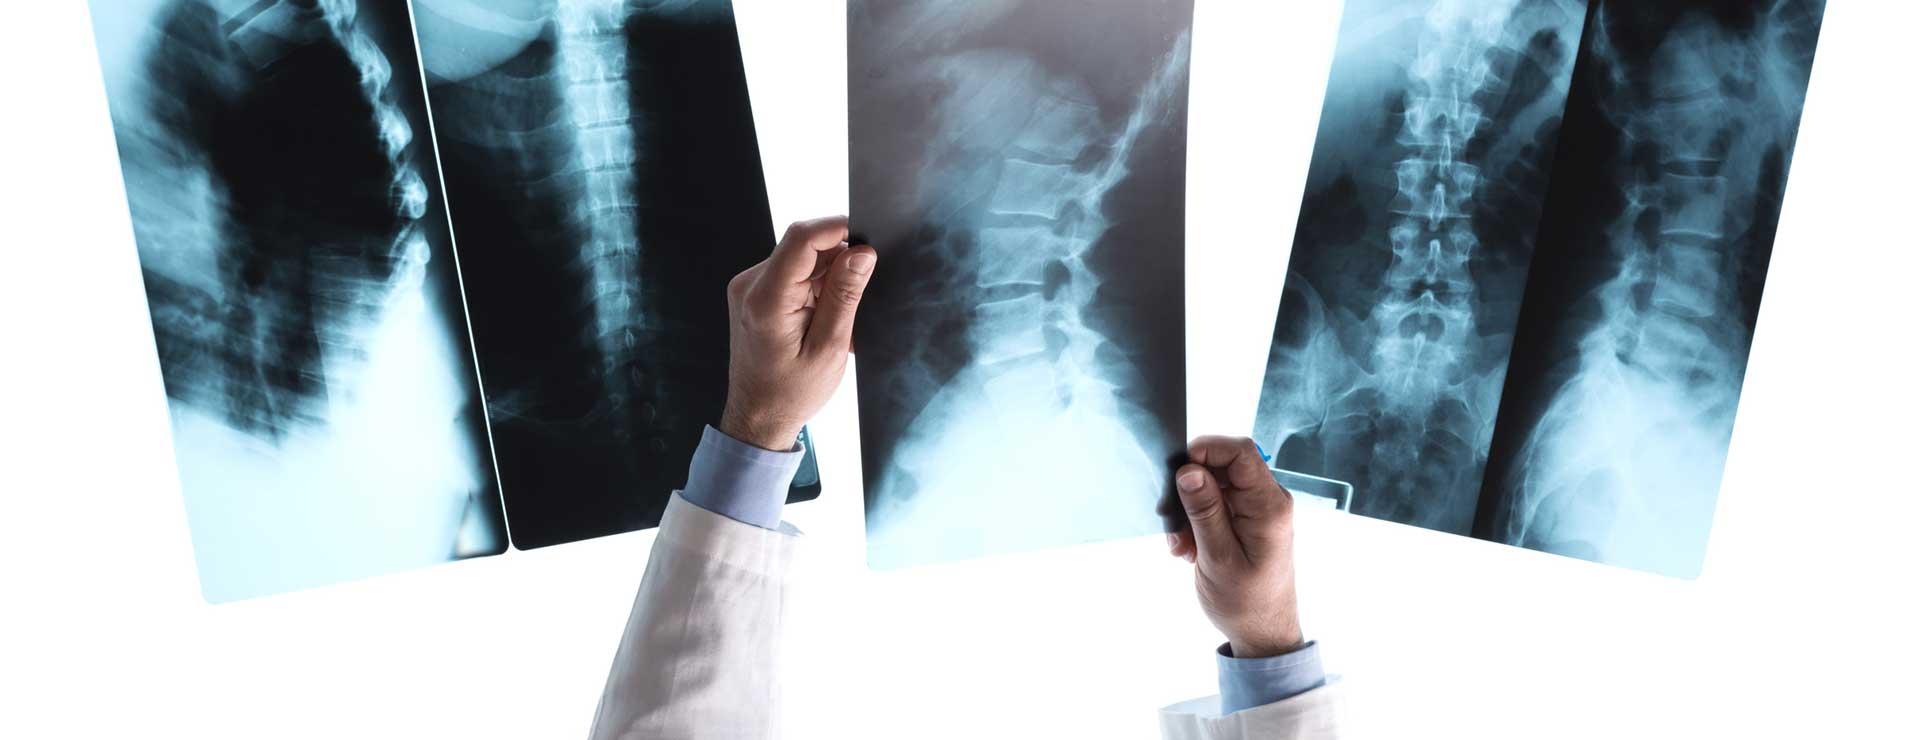 Radiologist checking x-rays